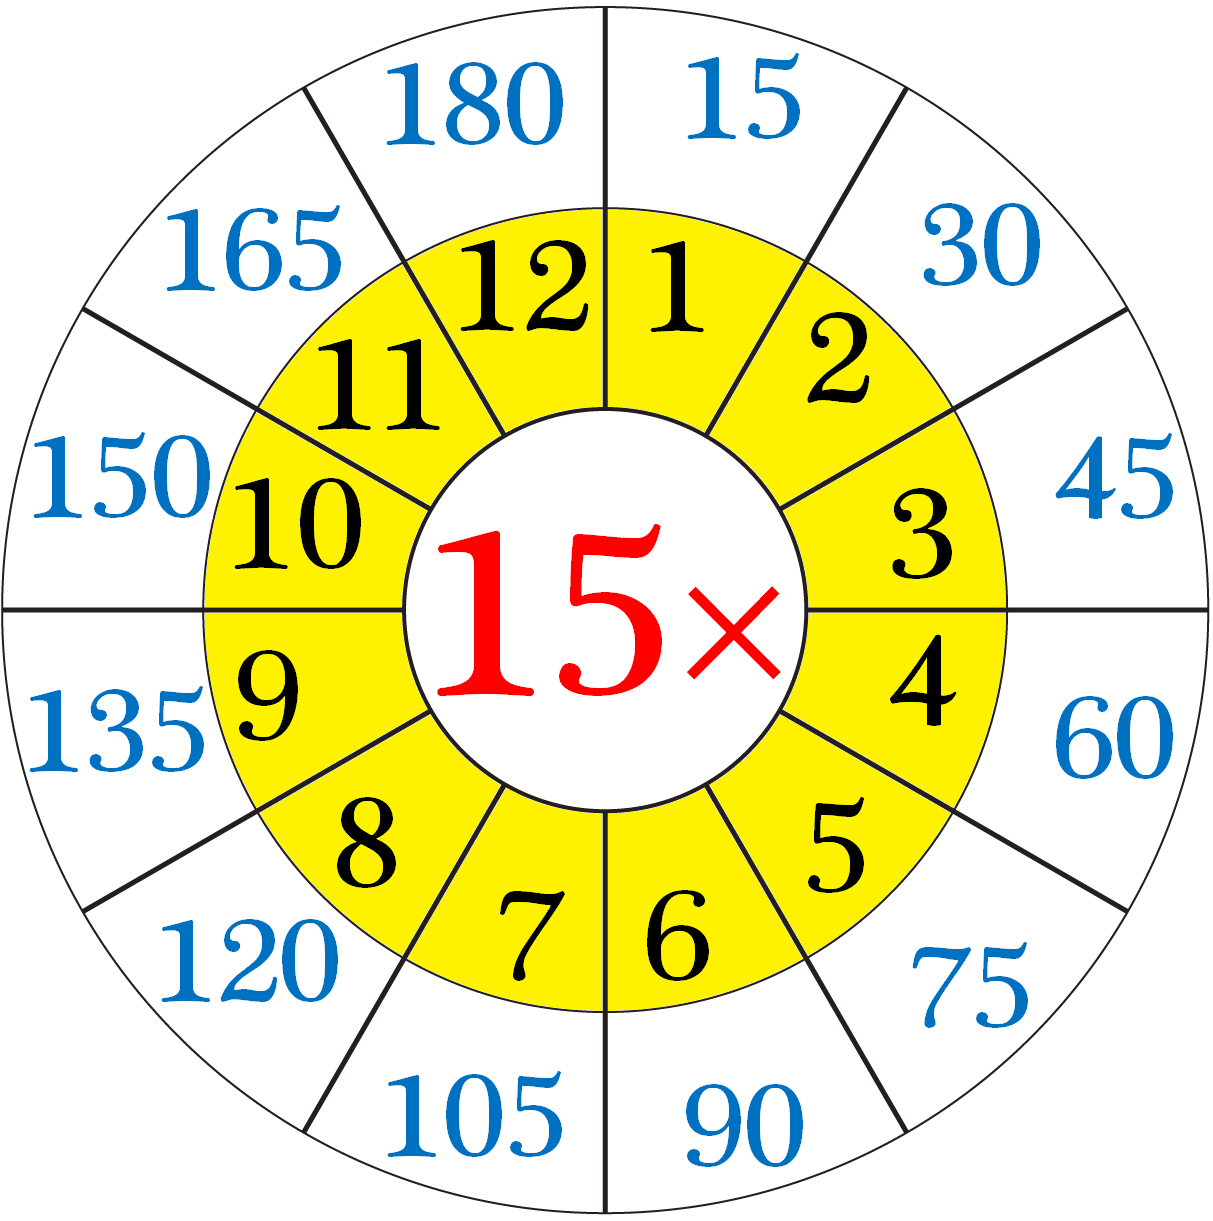 Multiplication Table Of 15